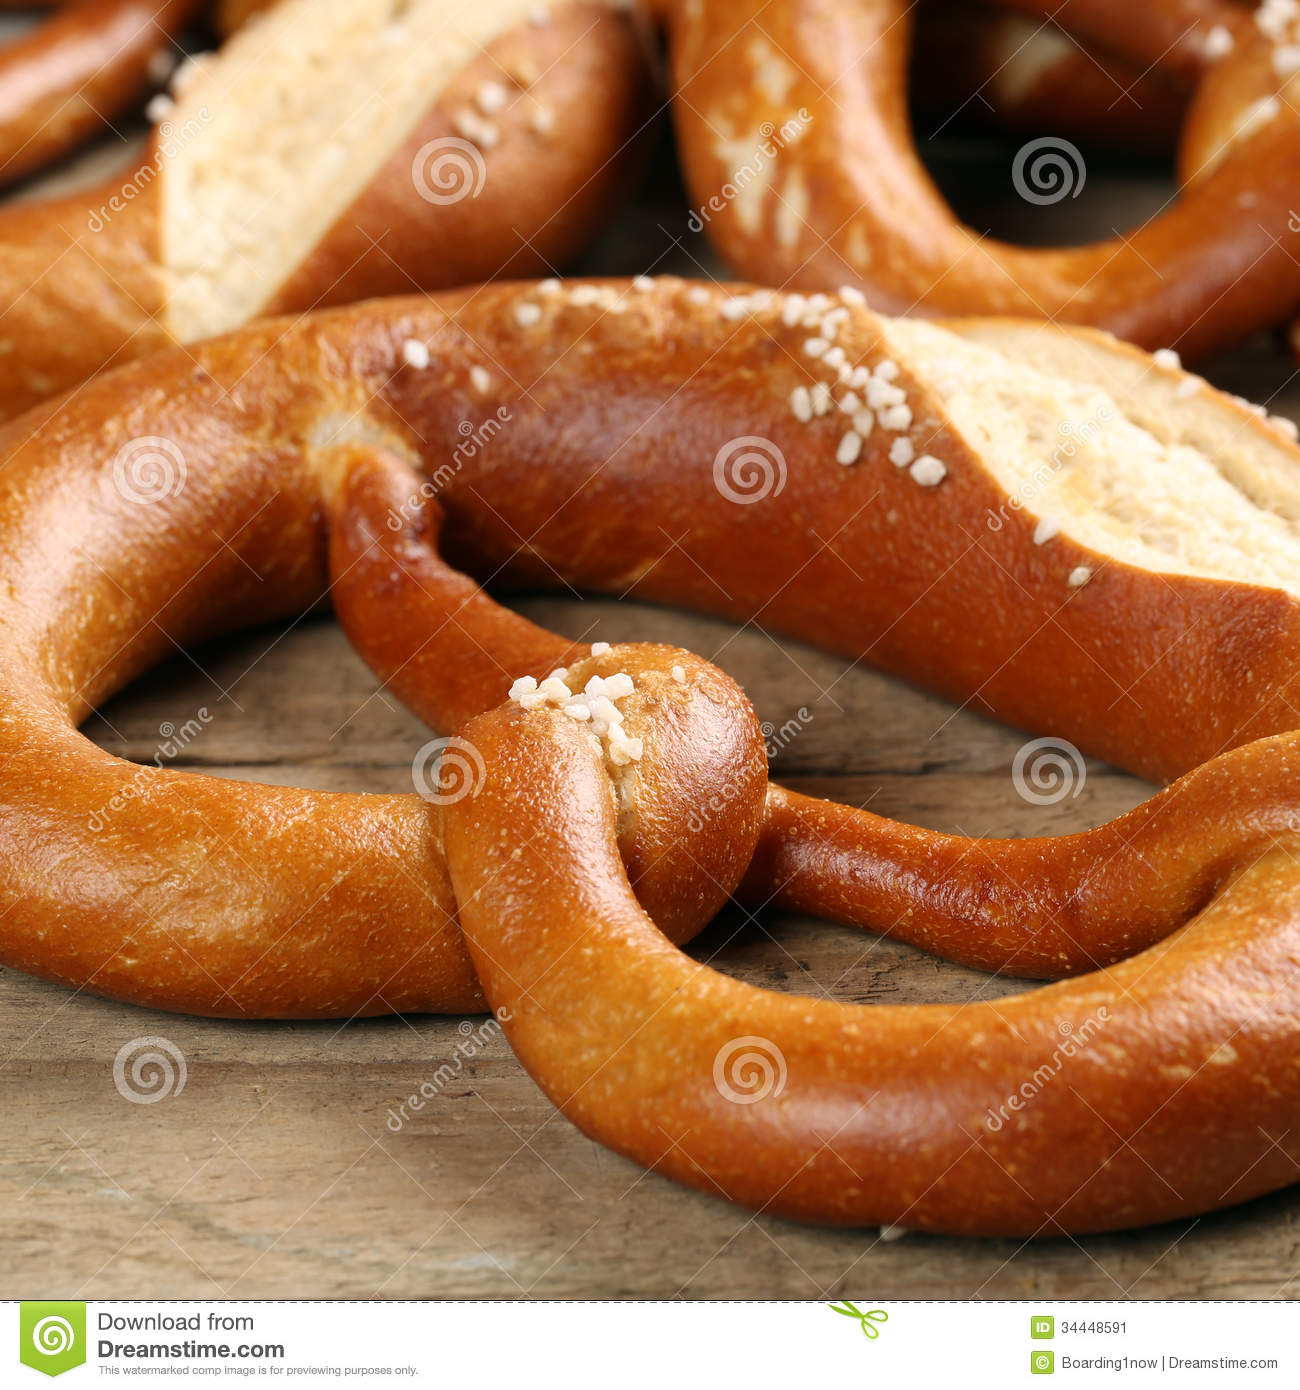 Bretzel allemand sur une table en bois image stock image for A table en allemand